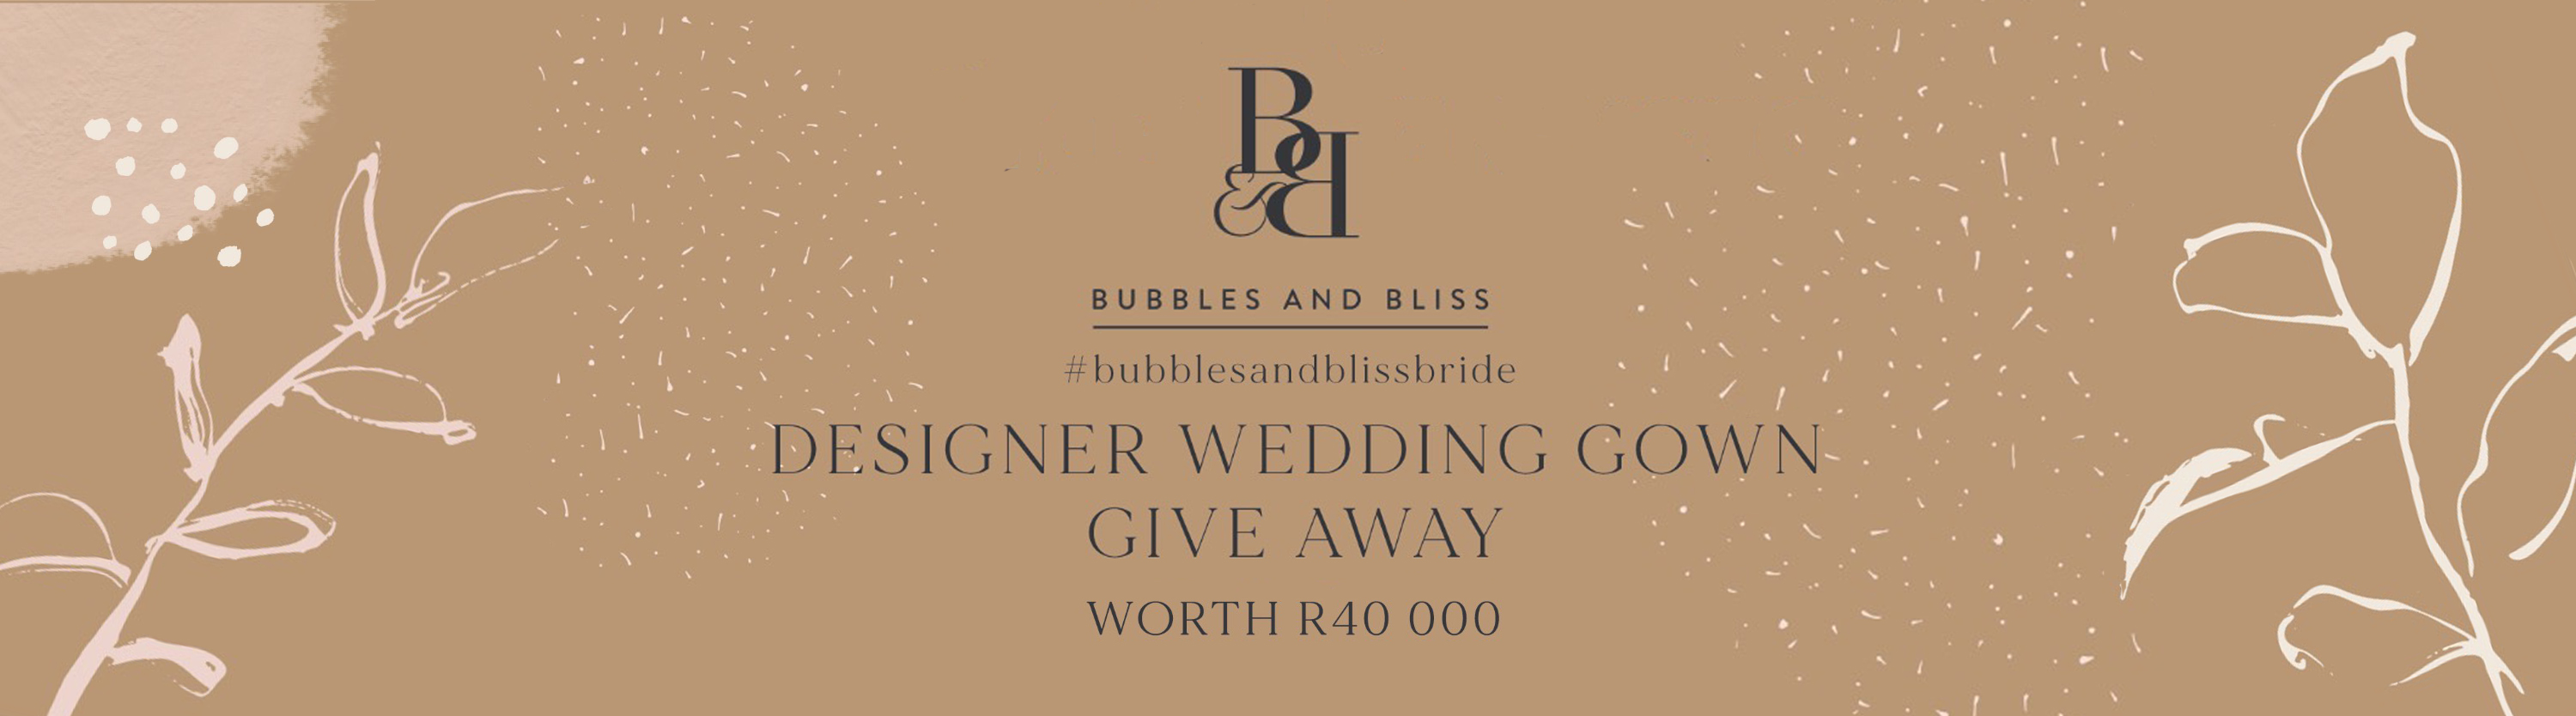 Win a bespoke, Made-to-Measure wedding gown experience!